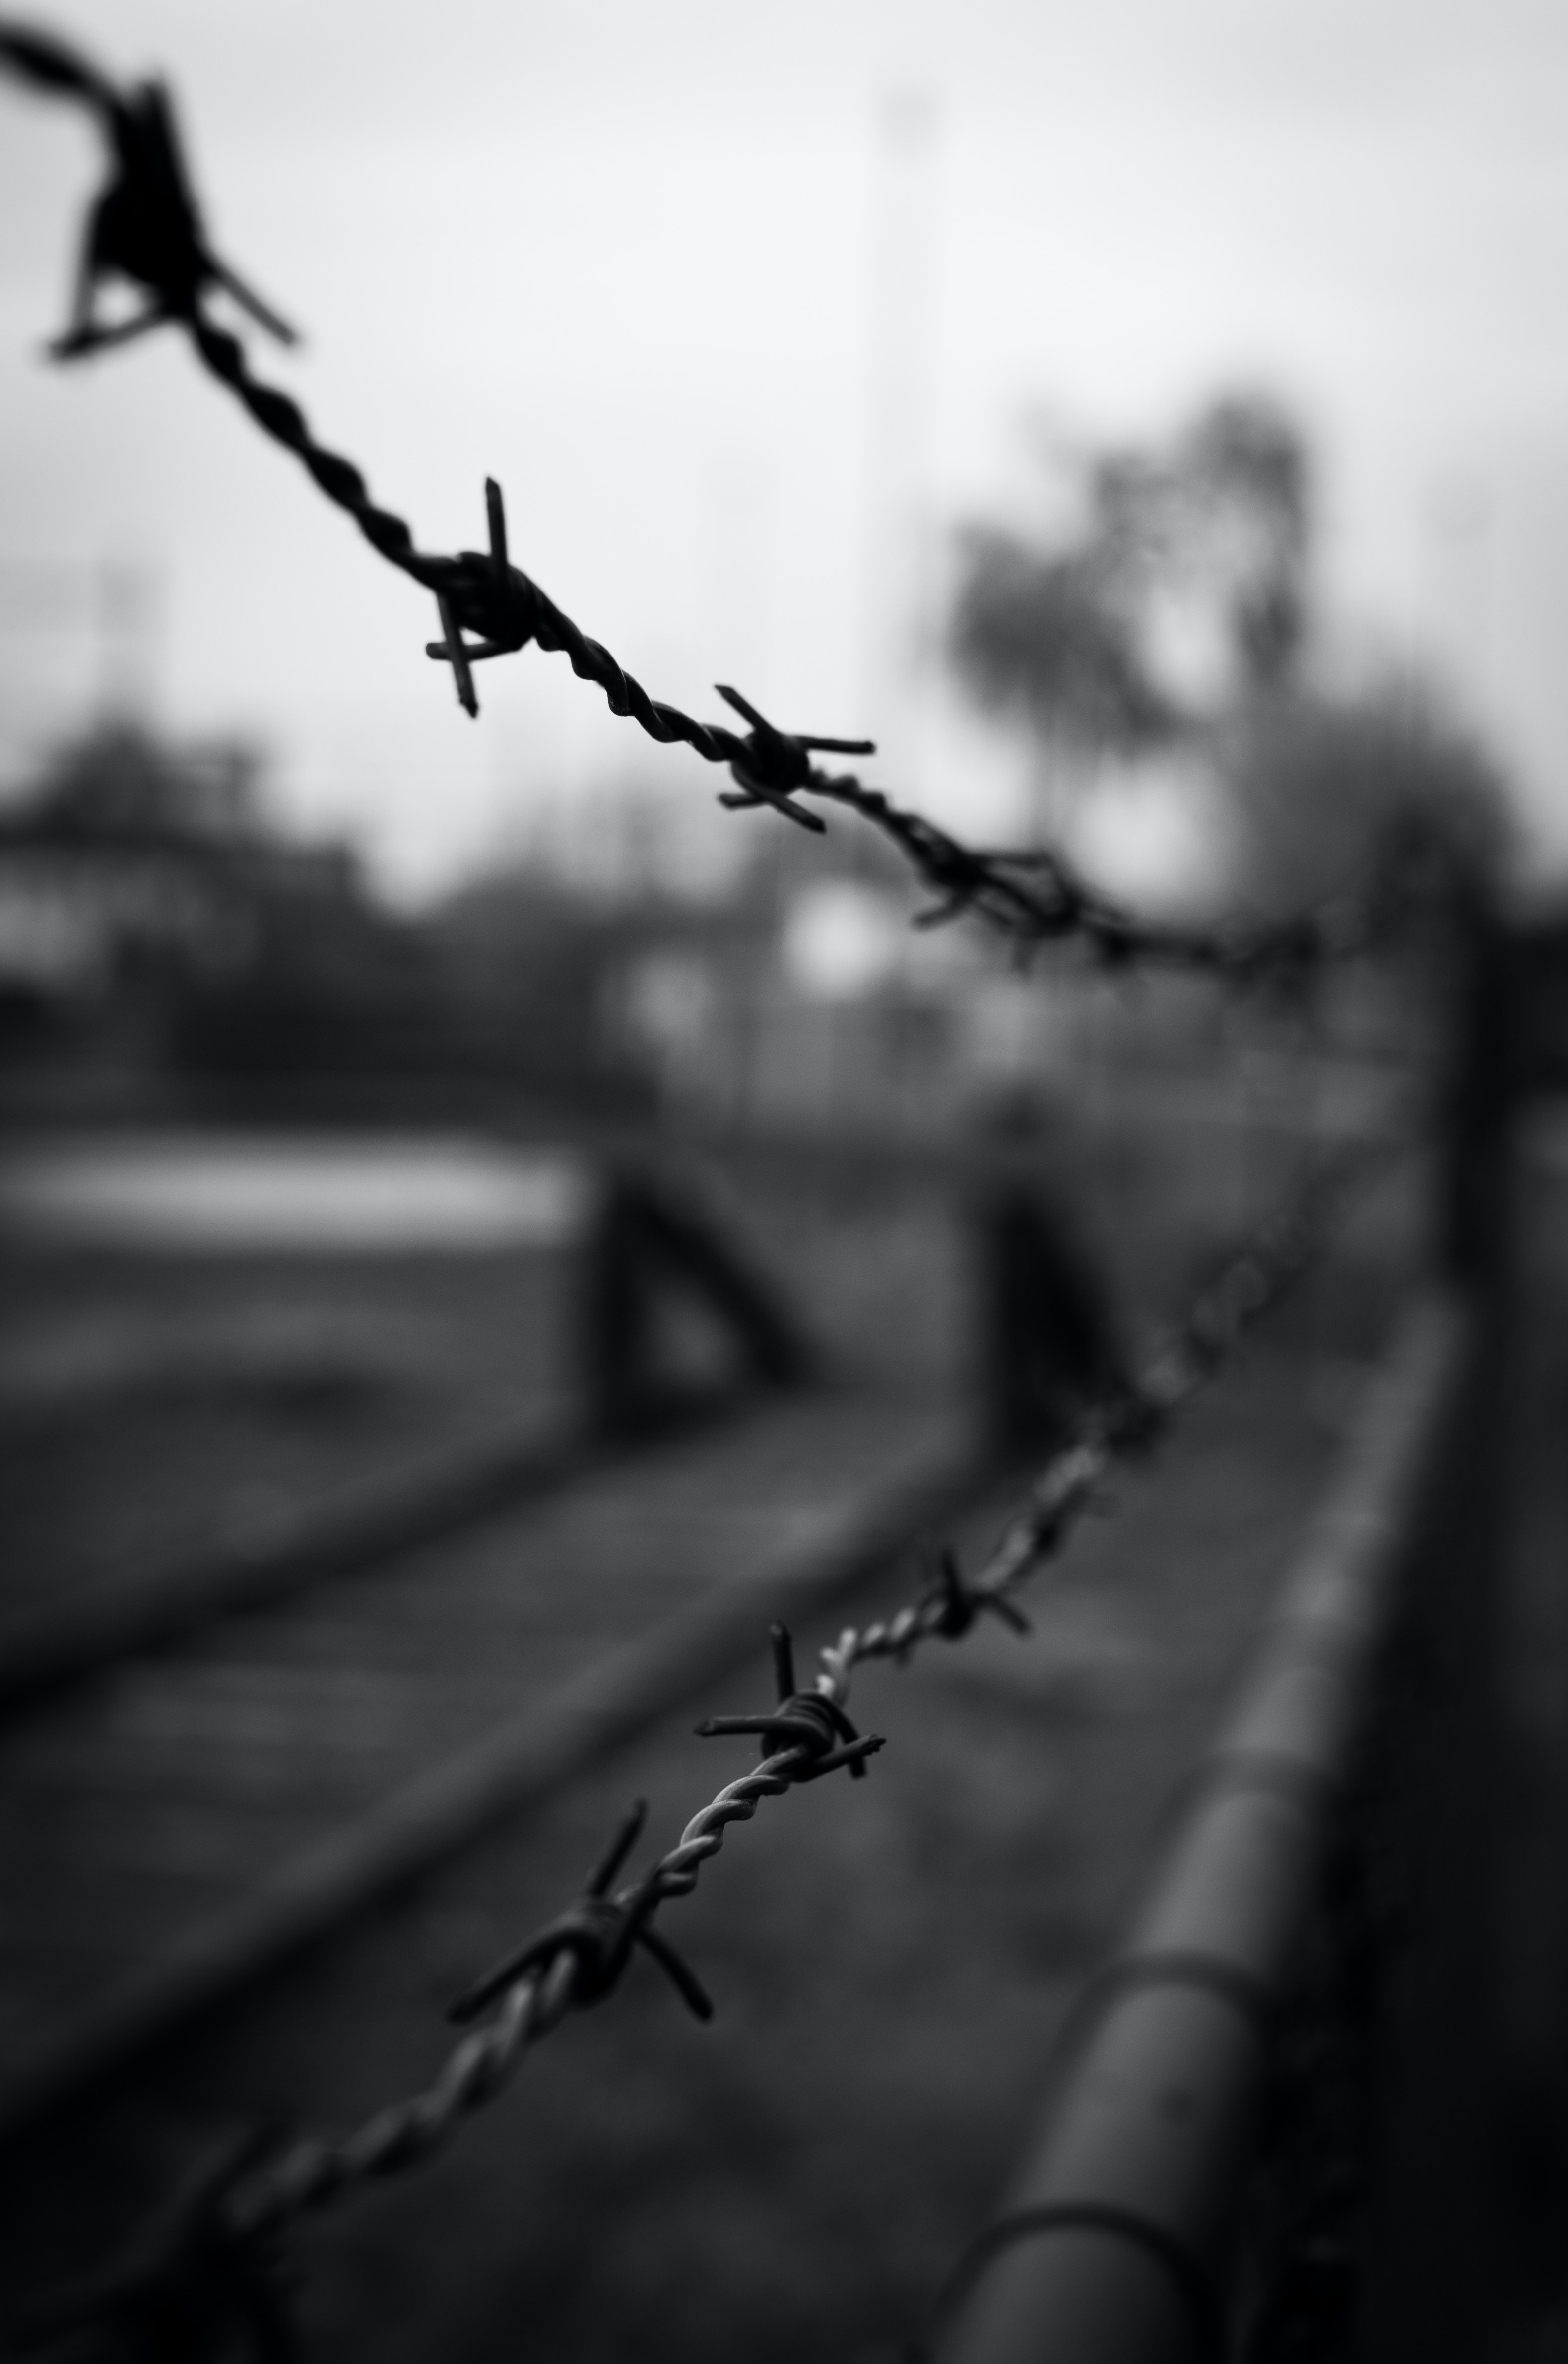 Free stock photo of barbed wire, black-and-white, crime